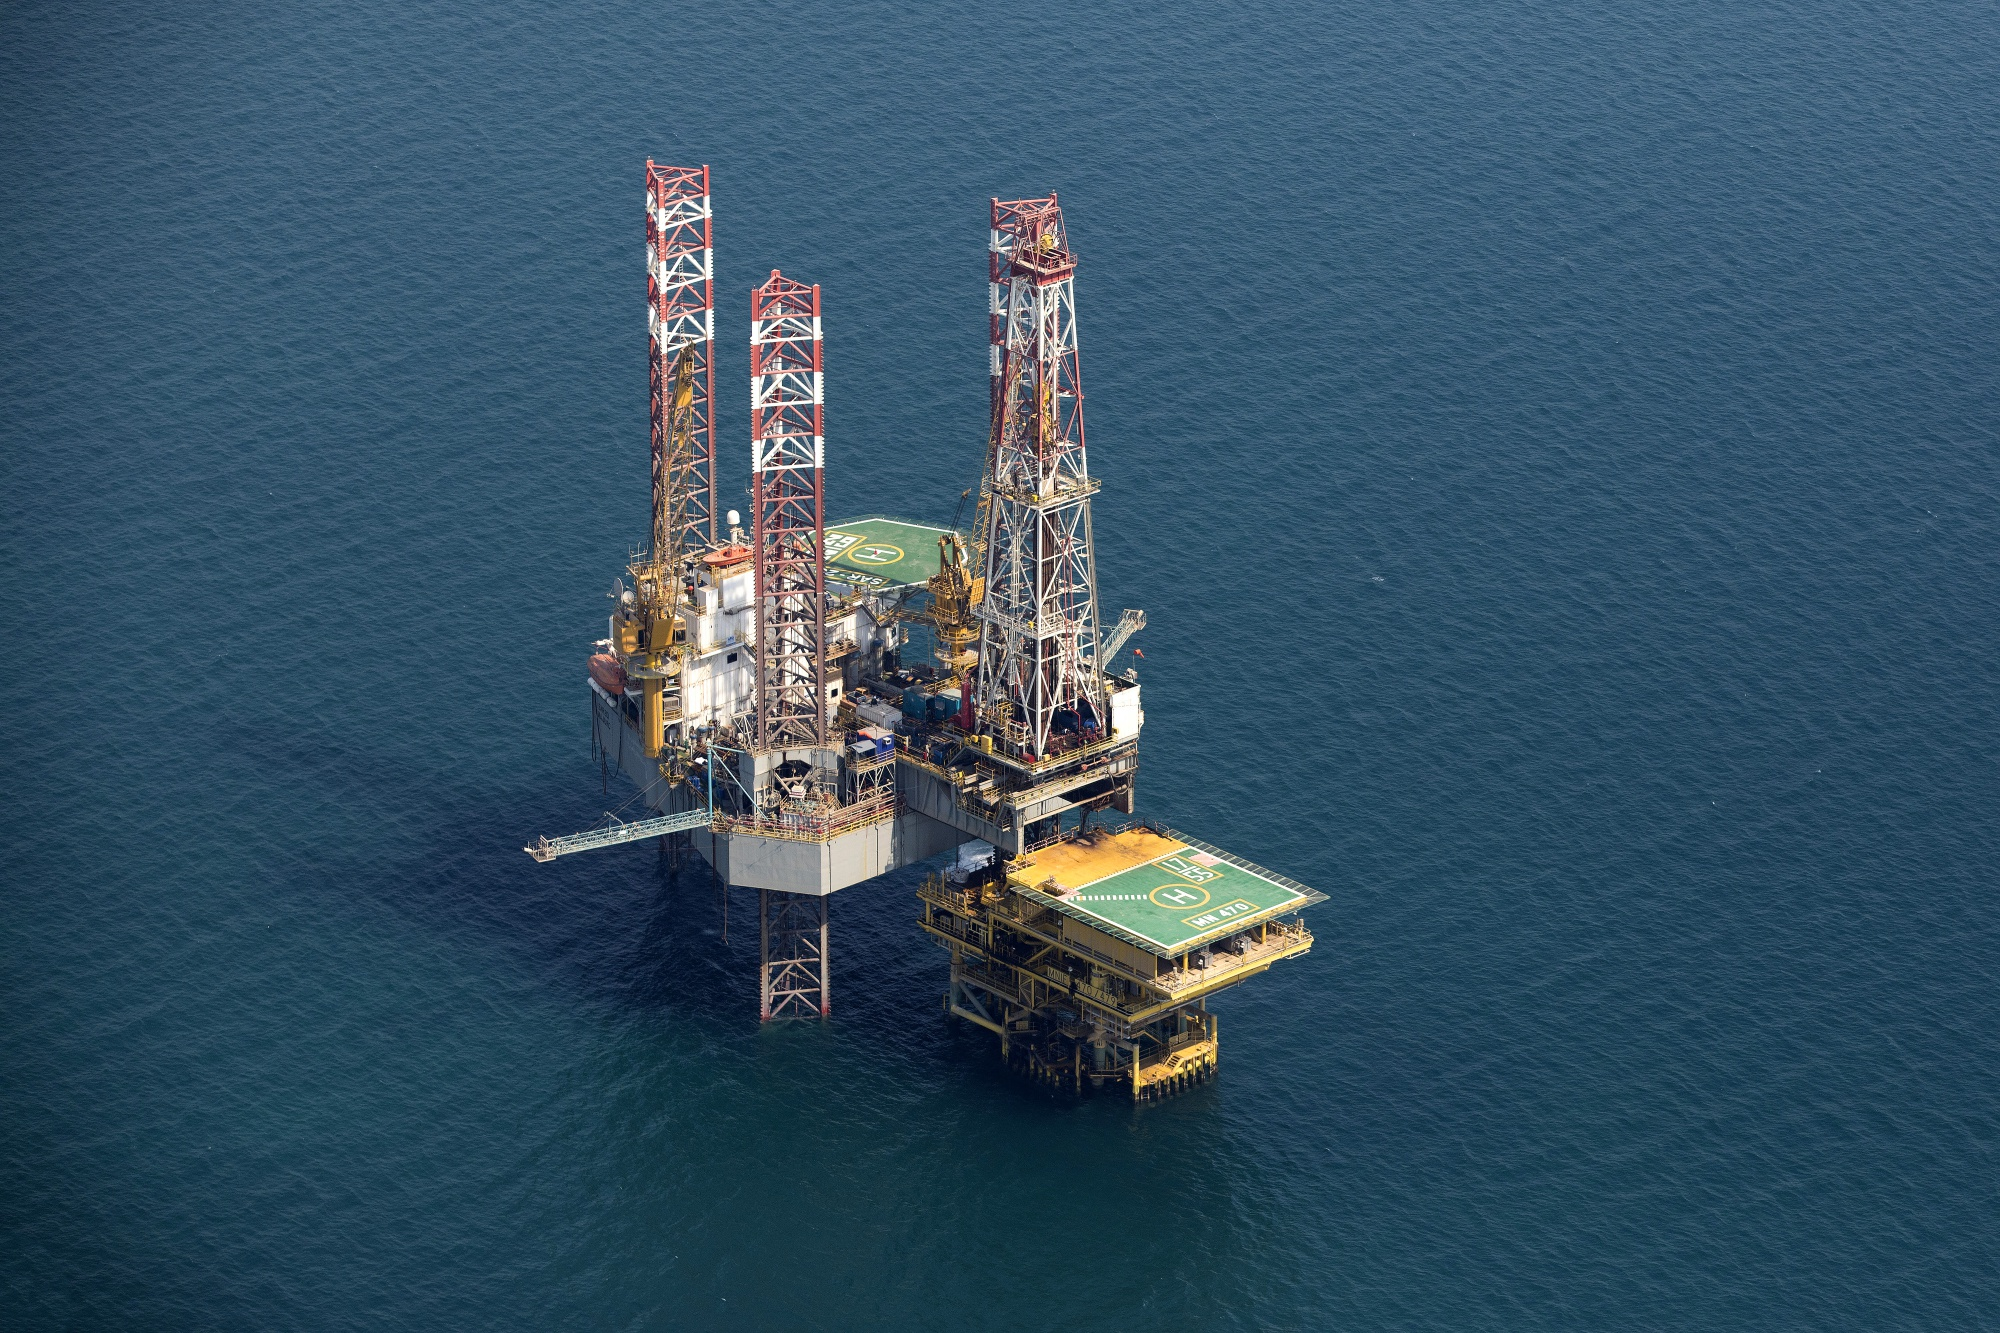 Winners and Losers in Big Oil's Offshore Spending Revival - Bloomberg